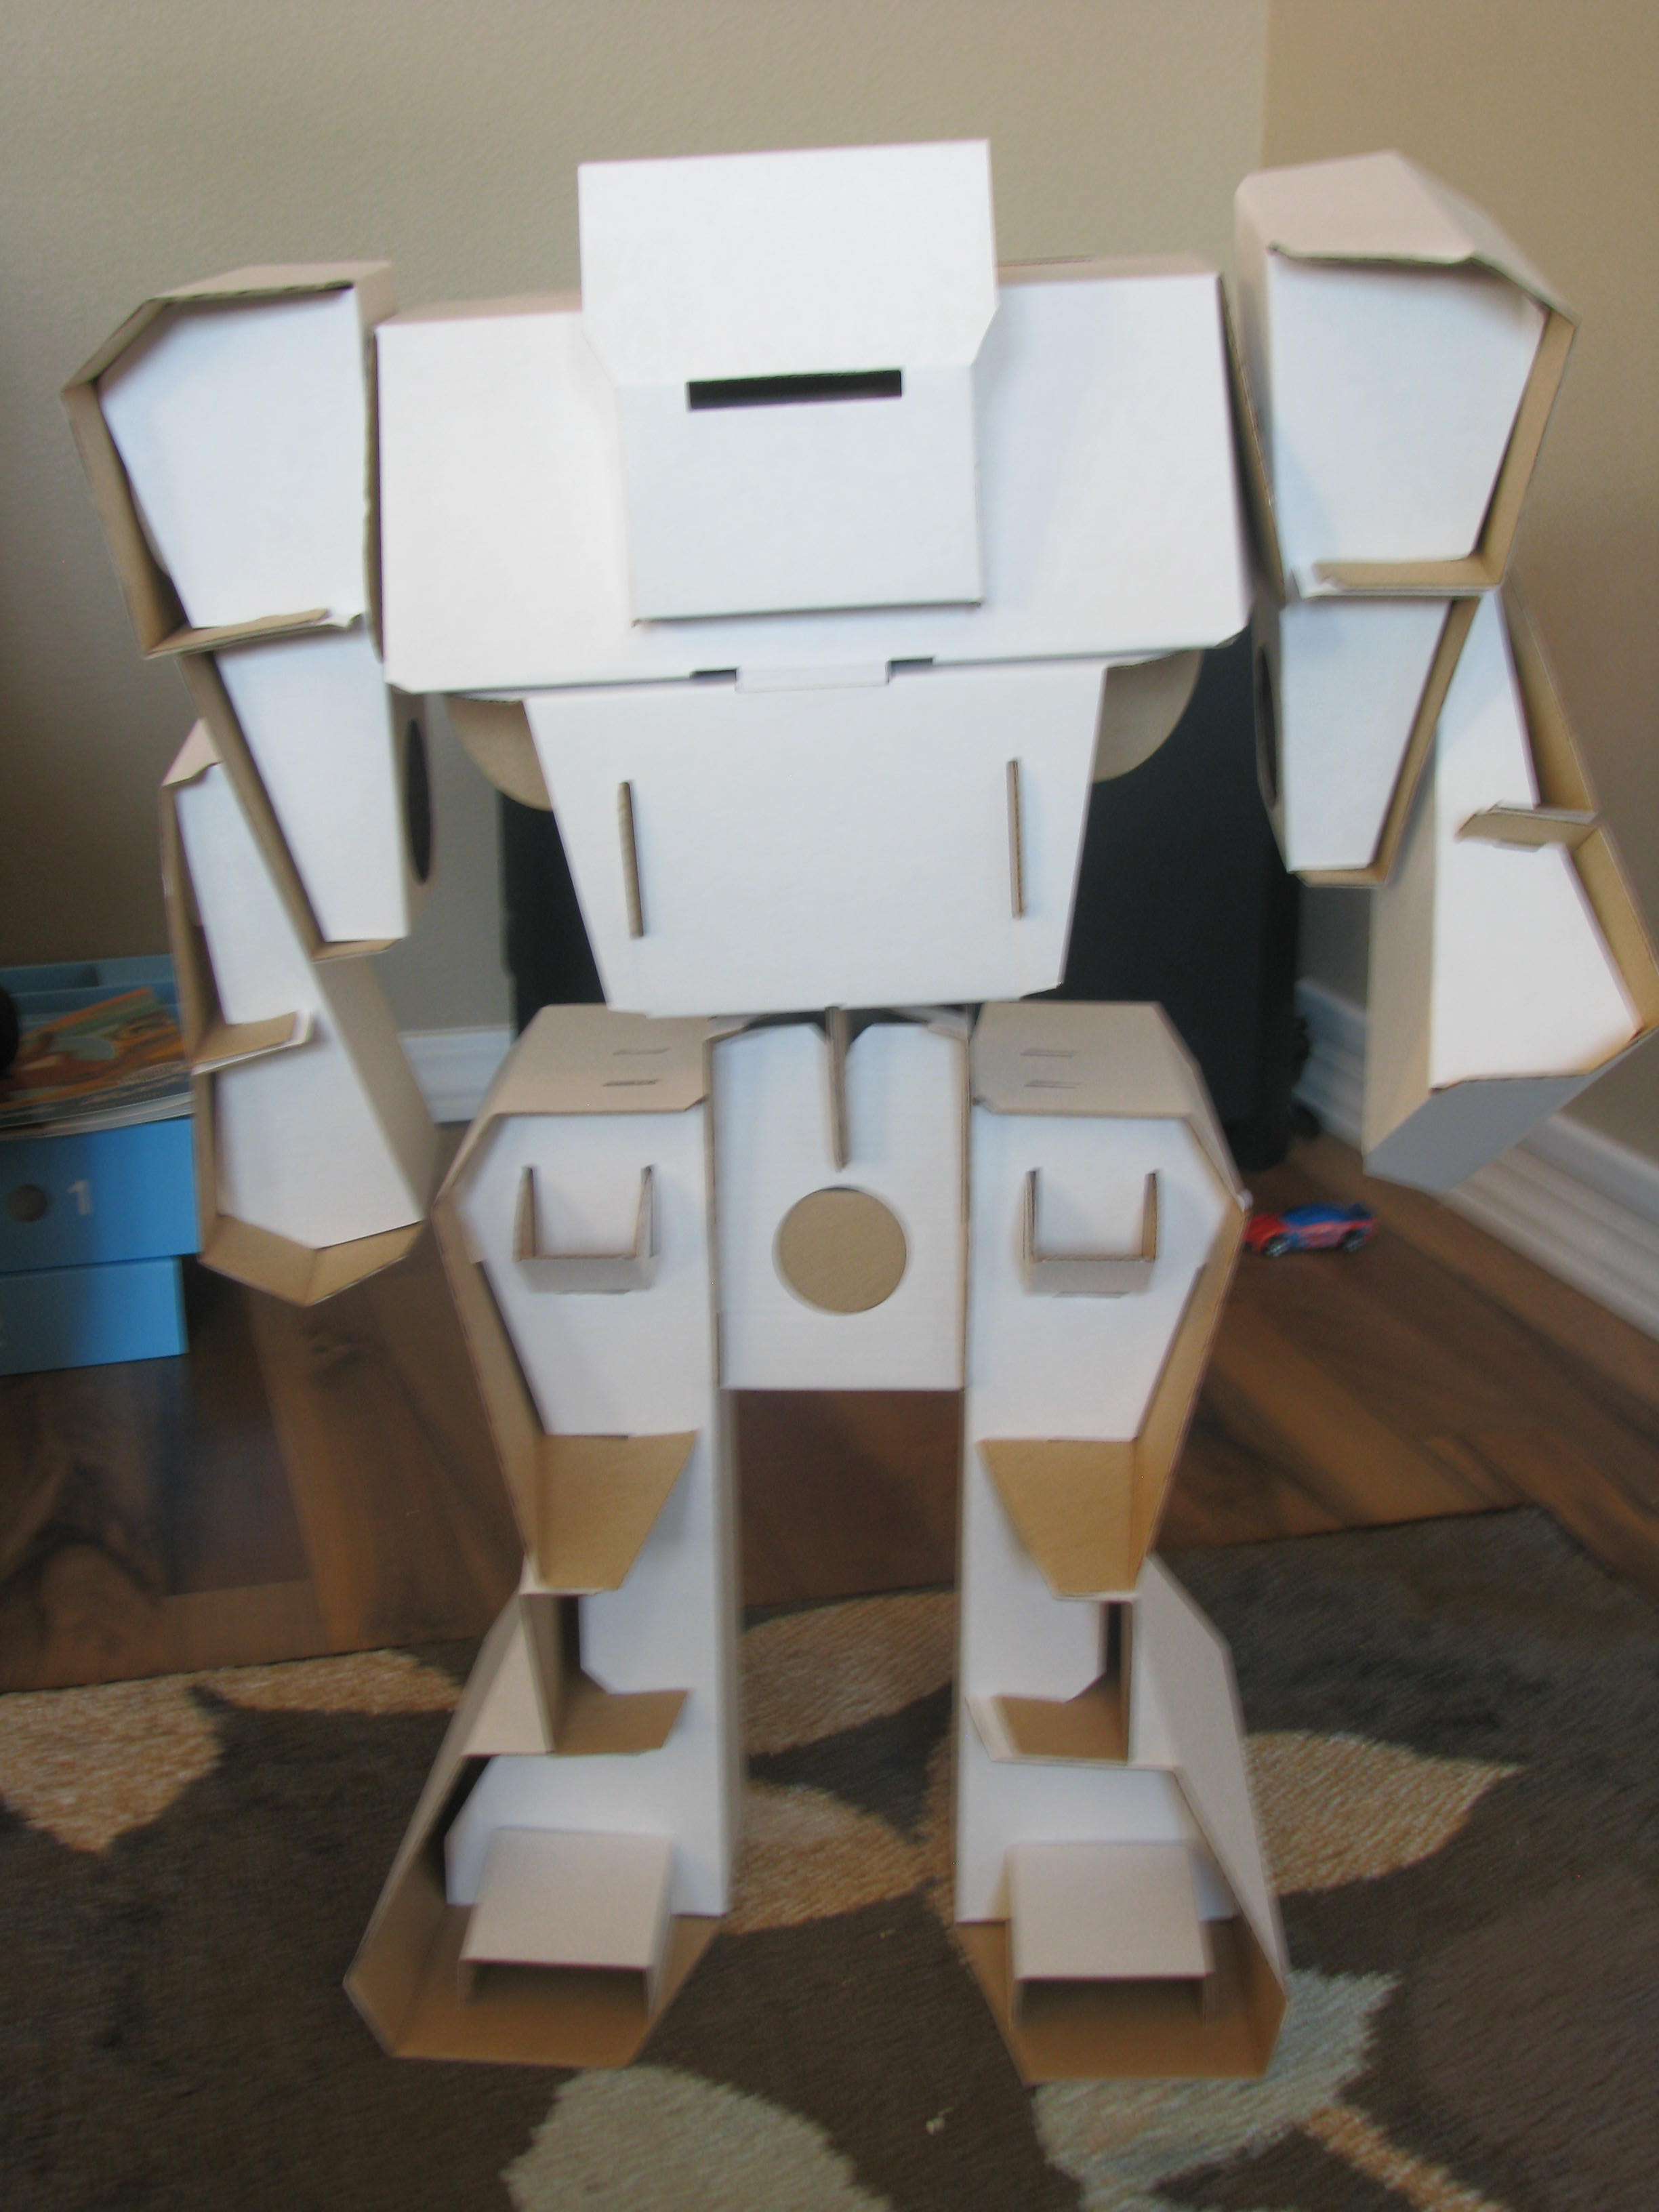 Do it yourself cardboard robot kit calafont calabot review once the calabot was finished it looked awesome it was bigger than i thought it would be and the kids thought he looked really cool solutioingenieria Image collections